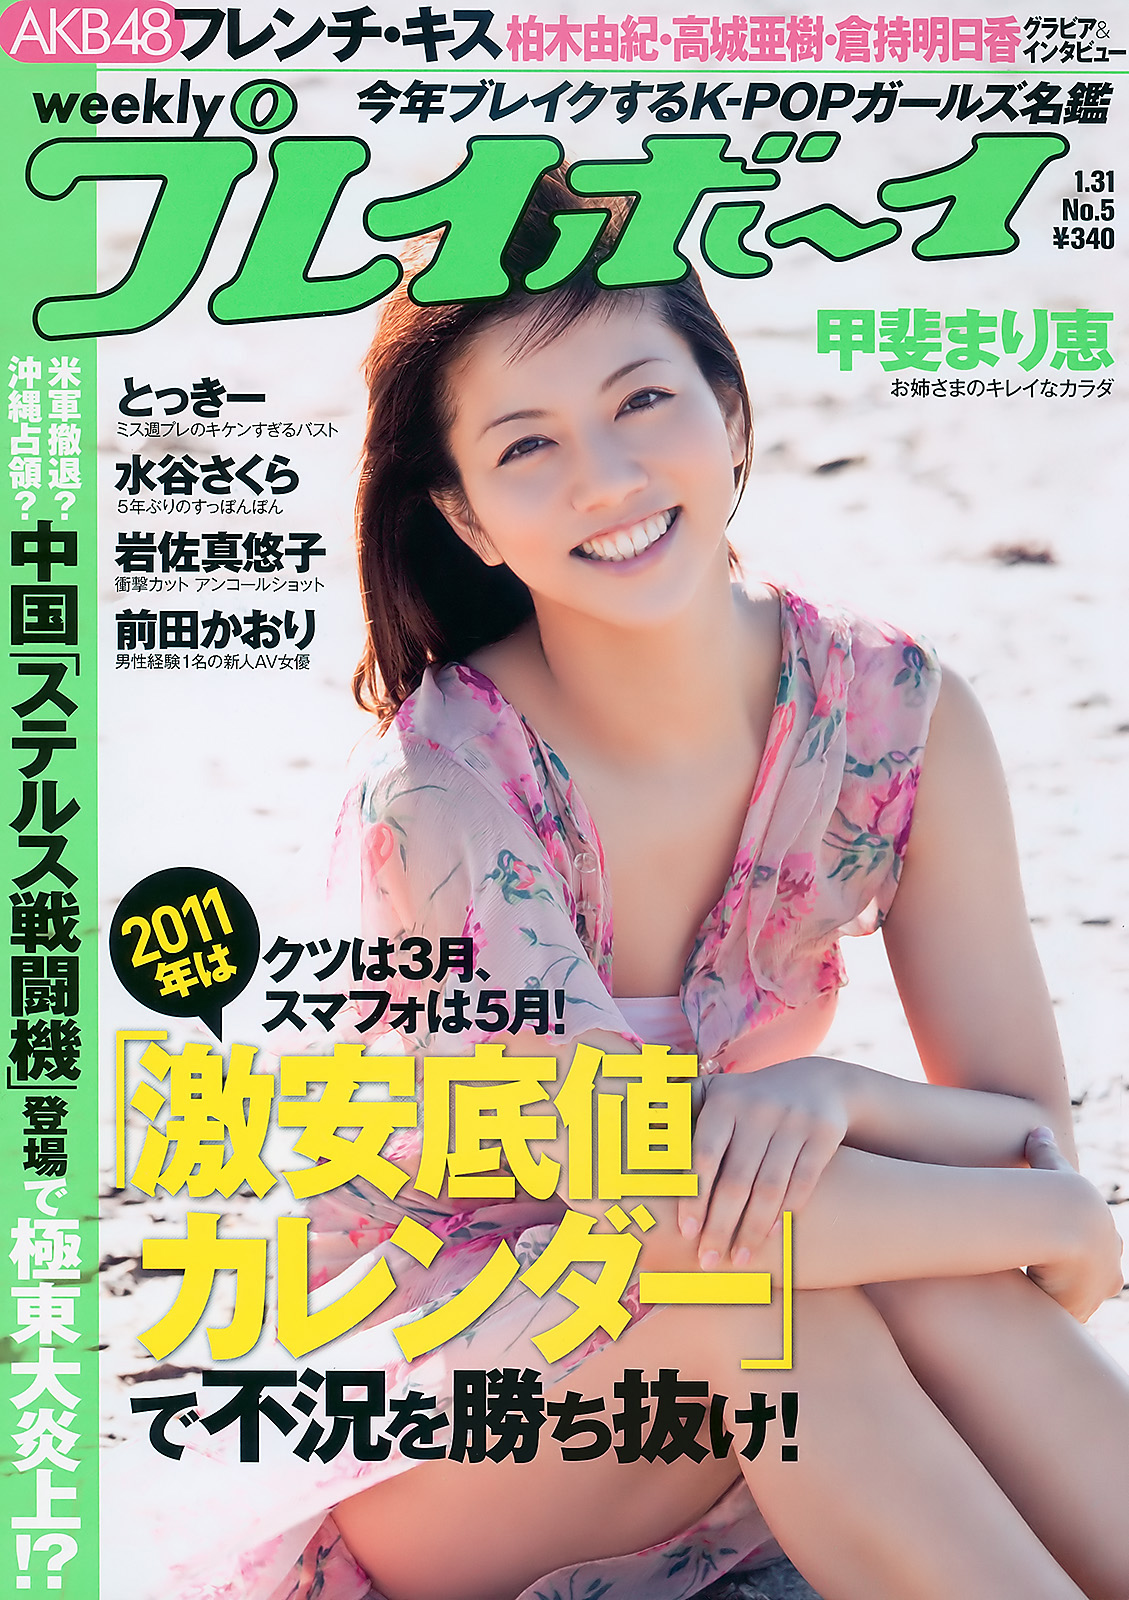 Weekly Playboy - 31 January 2011 (N° 5)